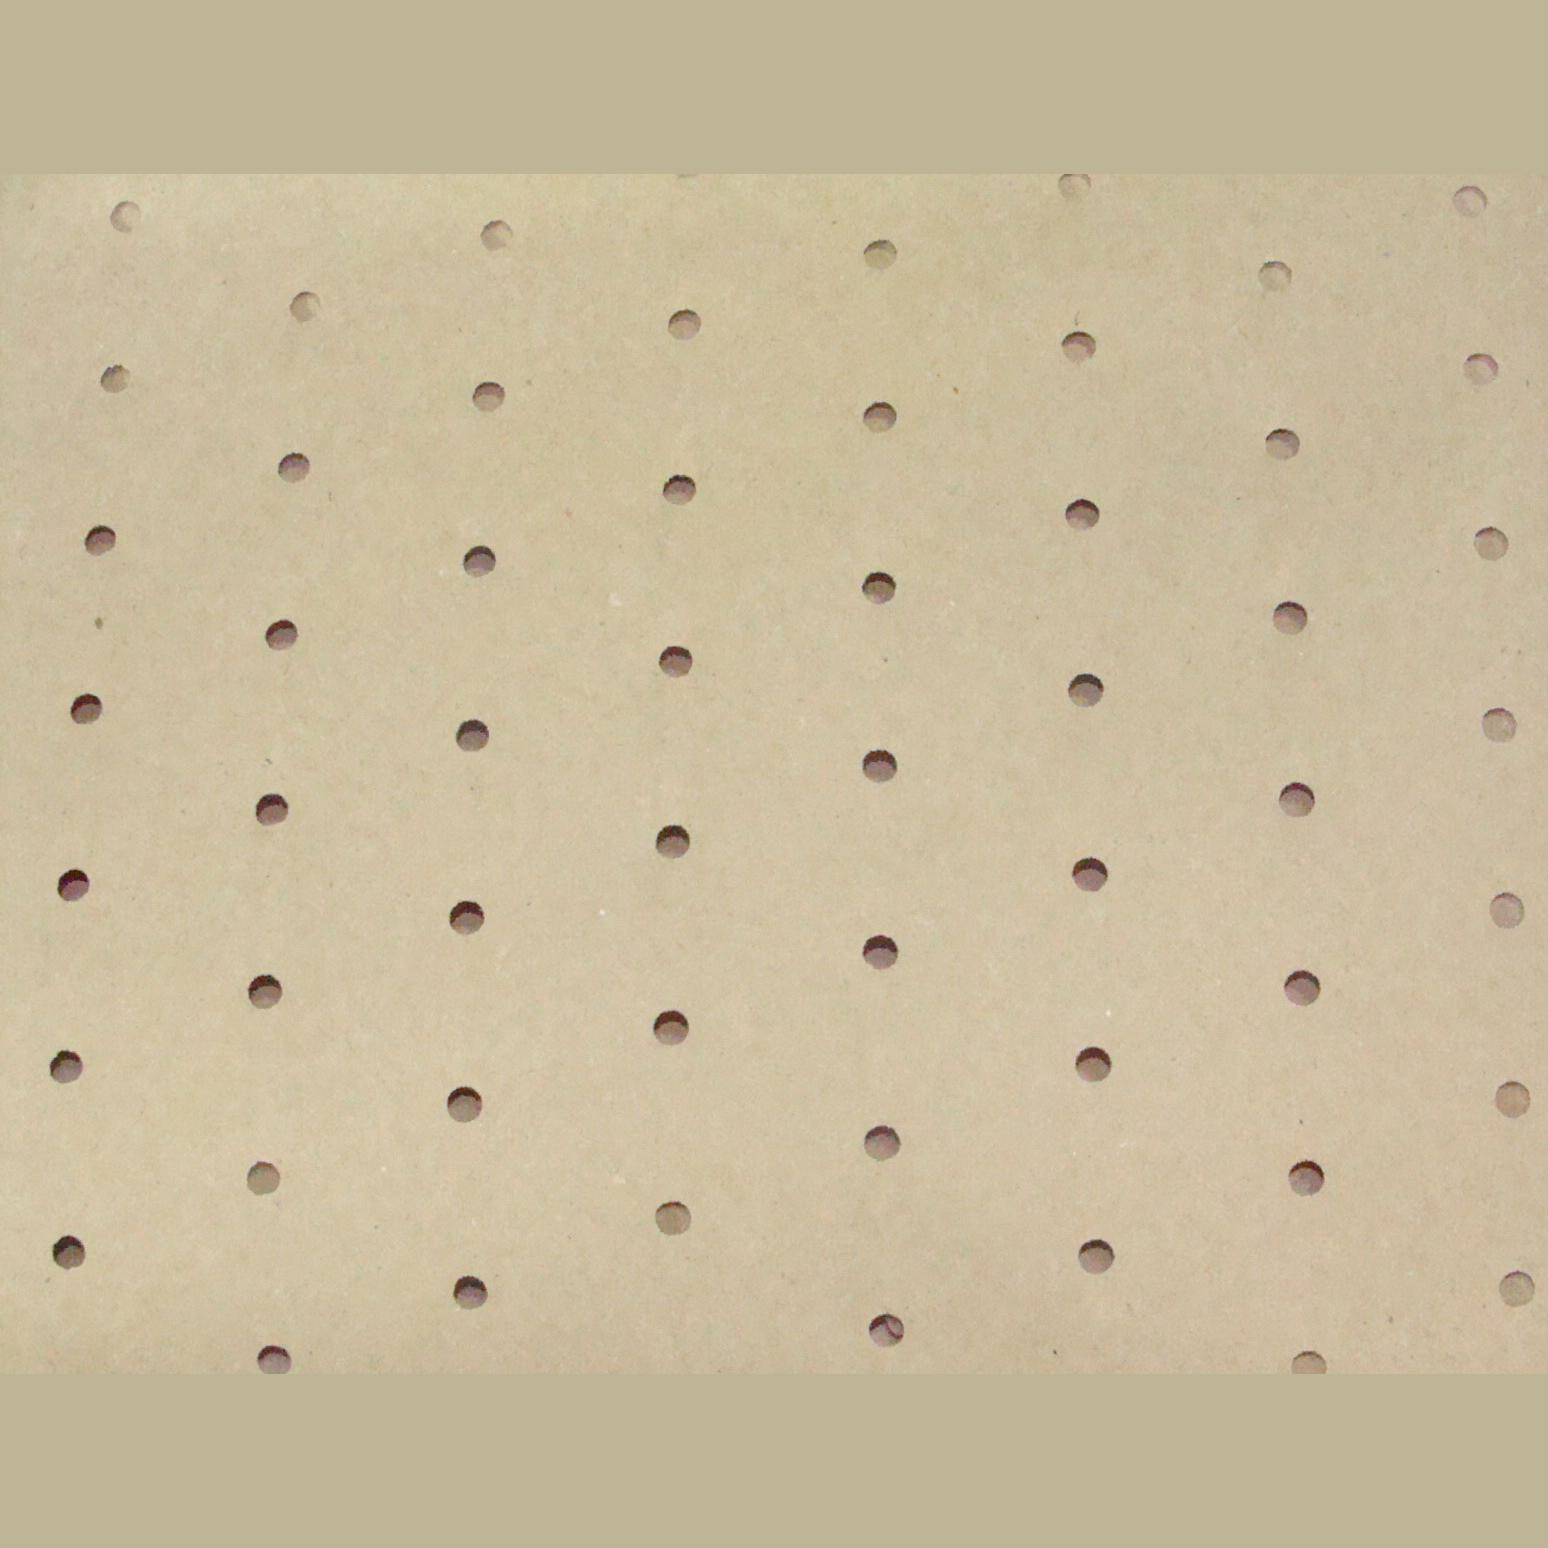 UP11067 170cm Perforated heavy duty underlay 110gsm x 150m-0